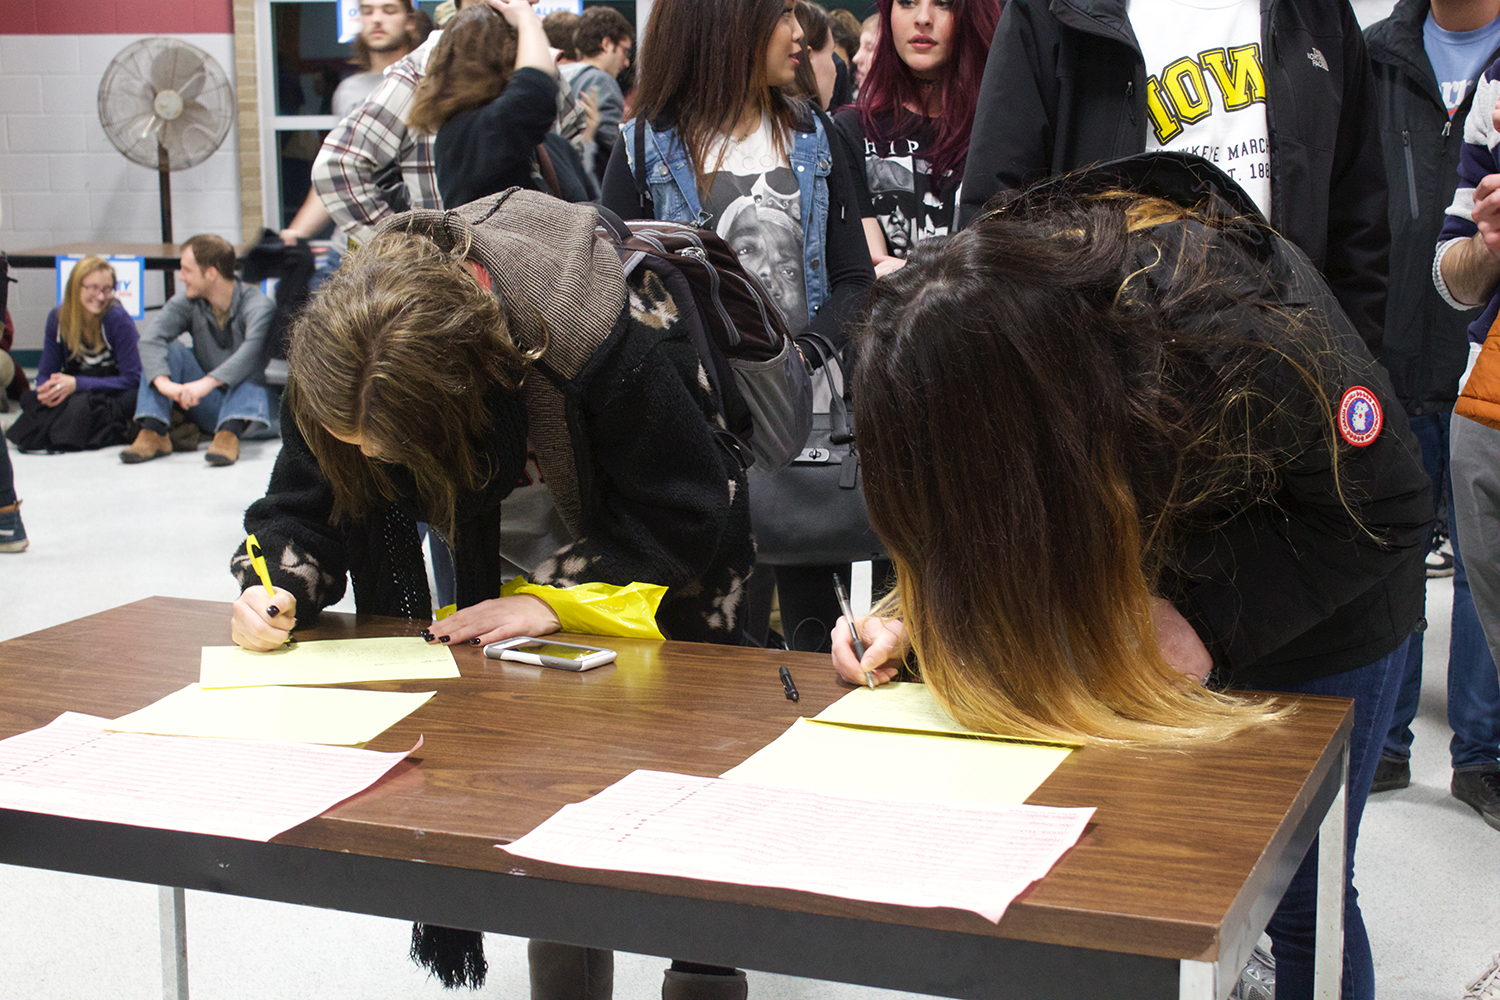 Students and members of the community sign in to caucus for the Democrat Party in the Robert Lee Rec Center on February 1, 2016.